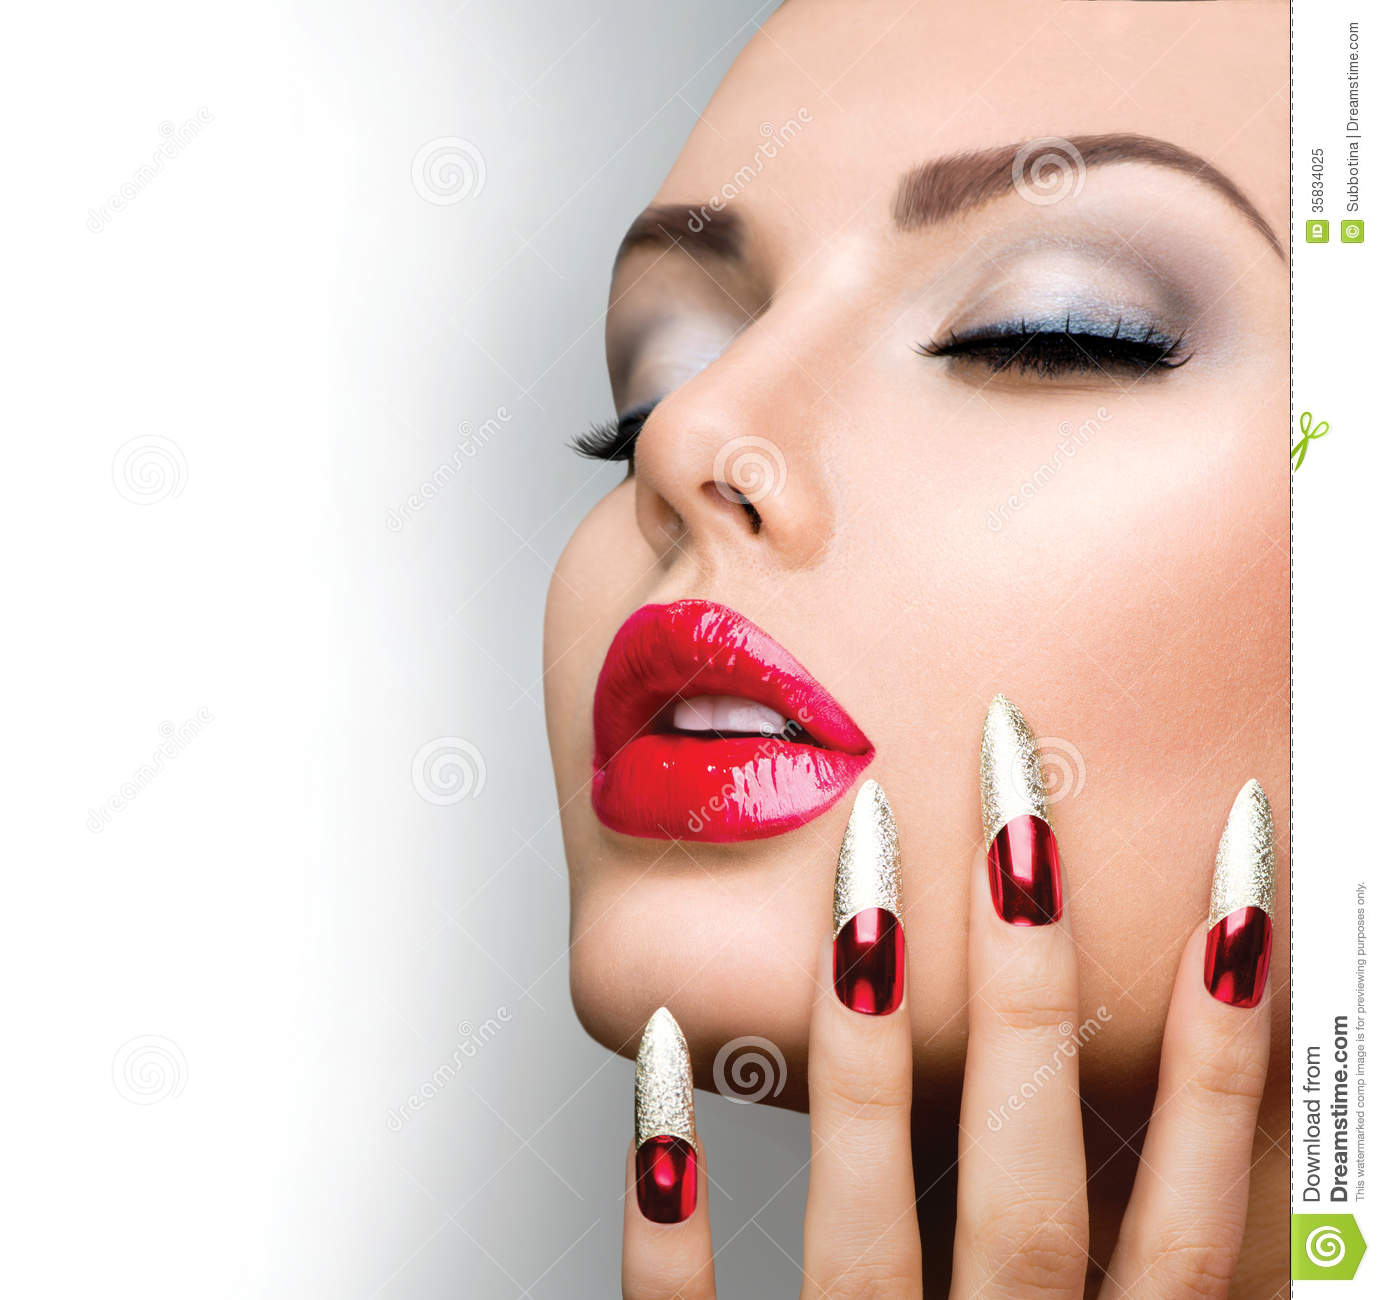 All 4u Hd Wallpaper Free Download Beautiful Nail Art: Fashion Beauty Model Girl Stock Image. Image Of Manicured